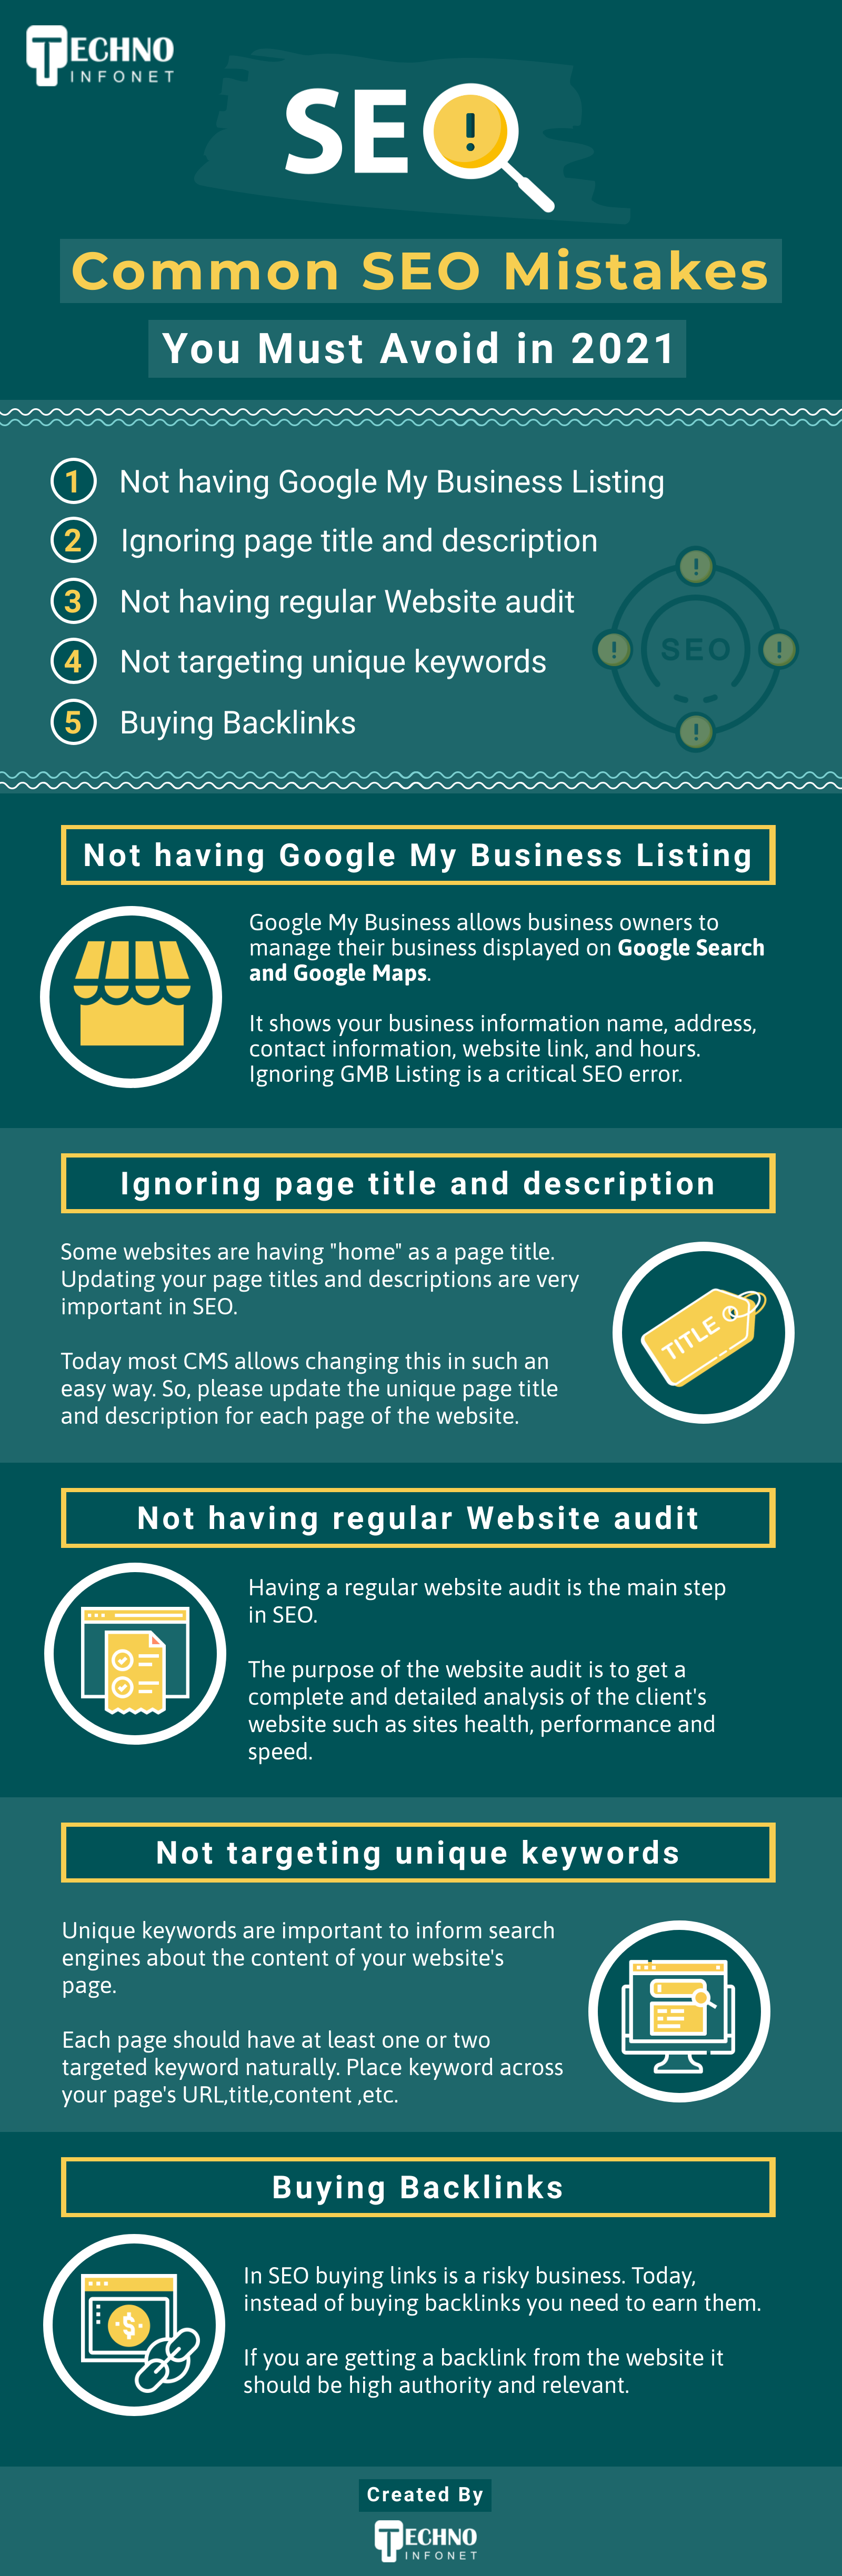 Common SEO Mistakes You Must Avoid